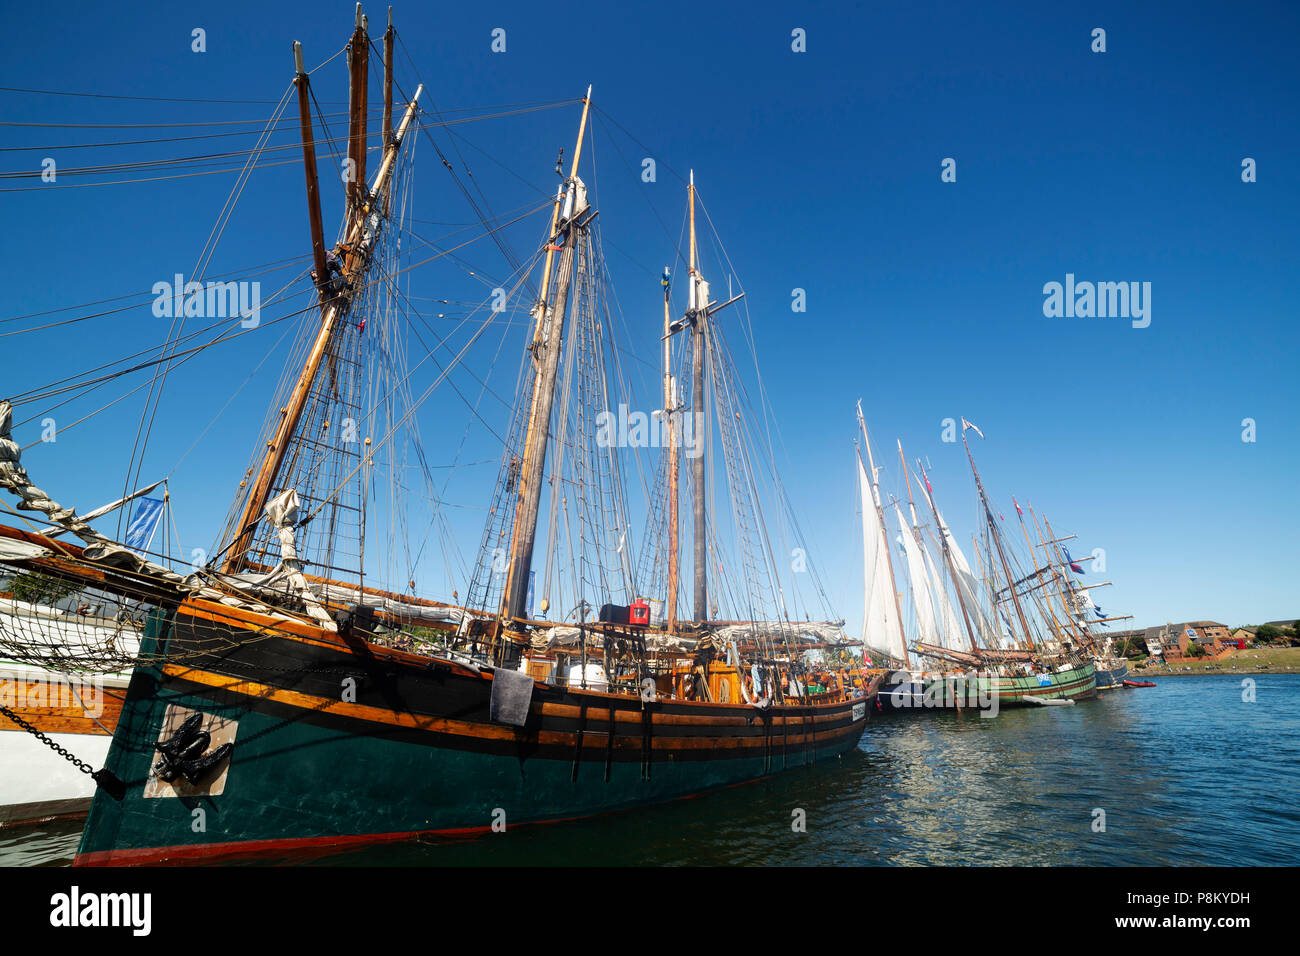 Sunderland, UK. 12th July, 2018. The Tall Ships Race at Sunderland in north-east England. The tall ships will be in Sunderland from 11 to 14 July before departing on the first leg of the 2018 Tall Ships Race, to Ebsjerg in Denmark. Credit: Stuart Forster/Alamy Live News - Stock Image